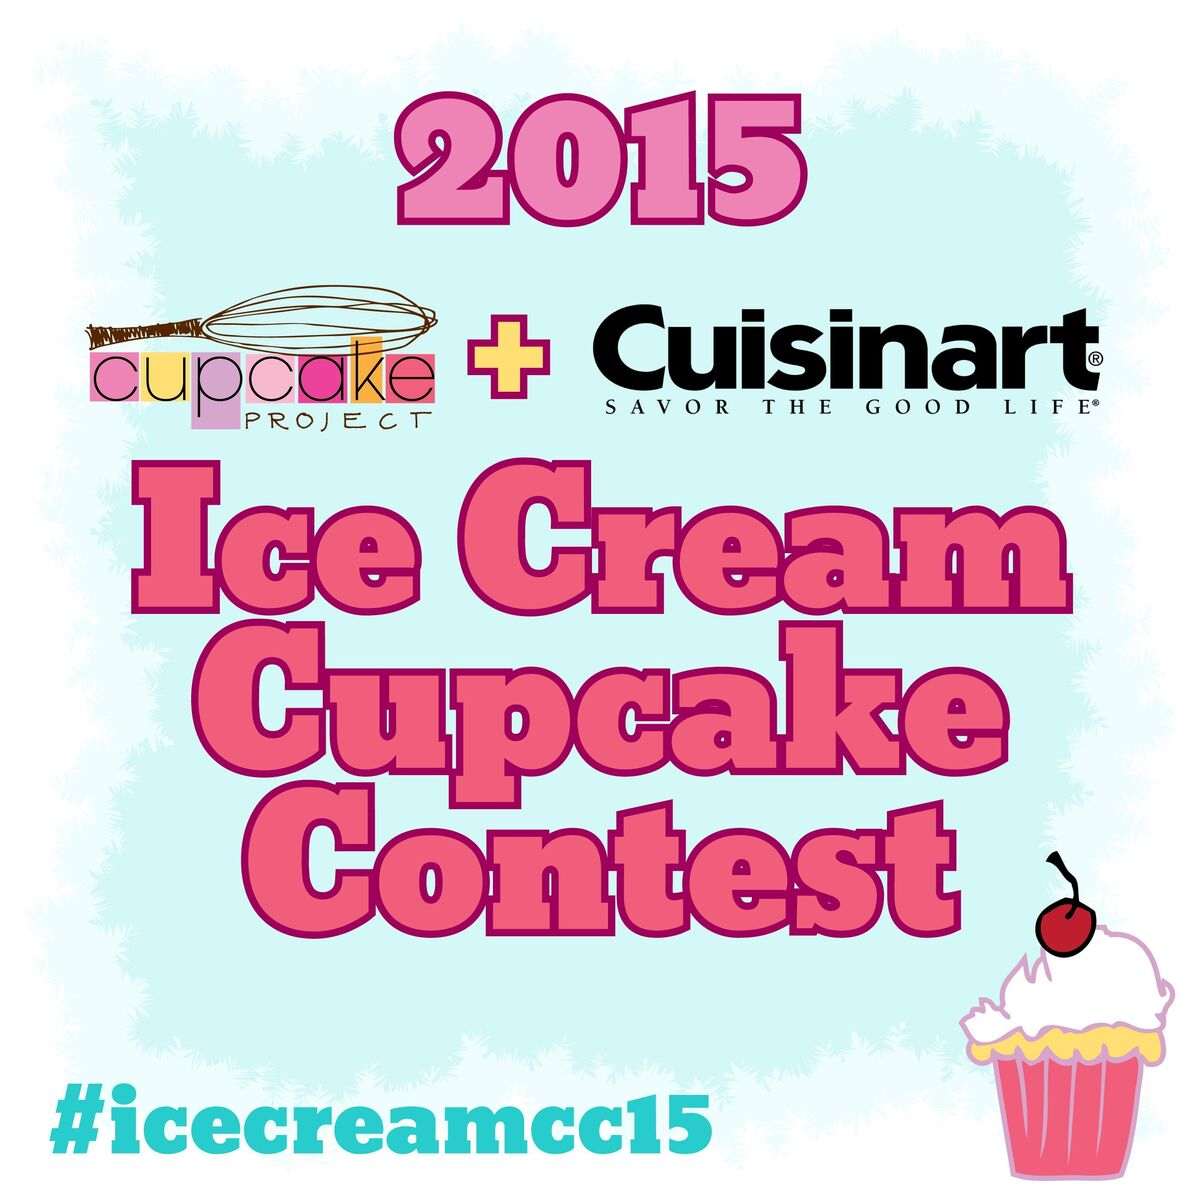 Announcing The 2015 Cupcake Project + Cuisinart Ice Cream Cupcake Contest